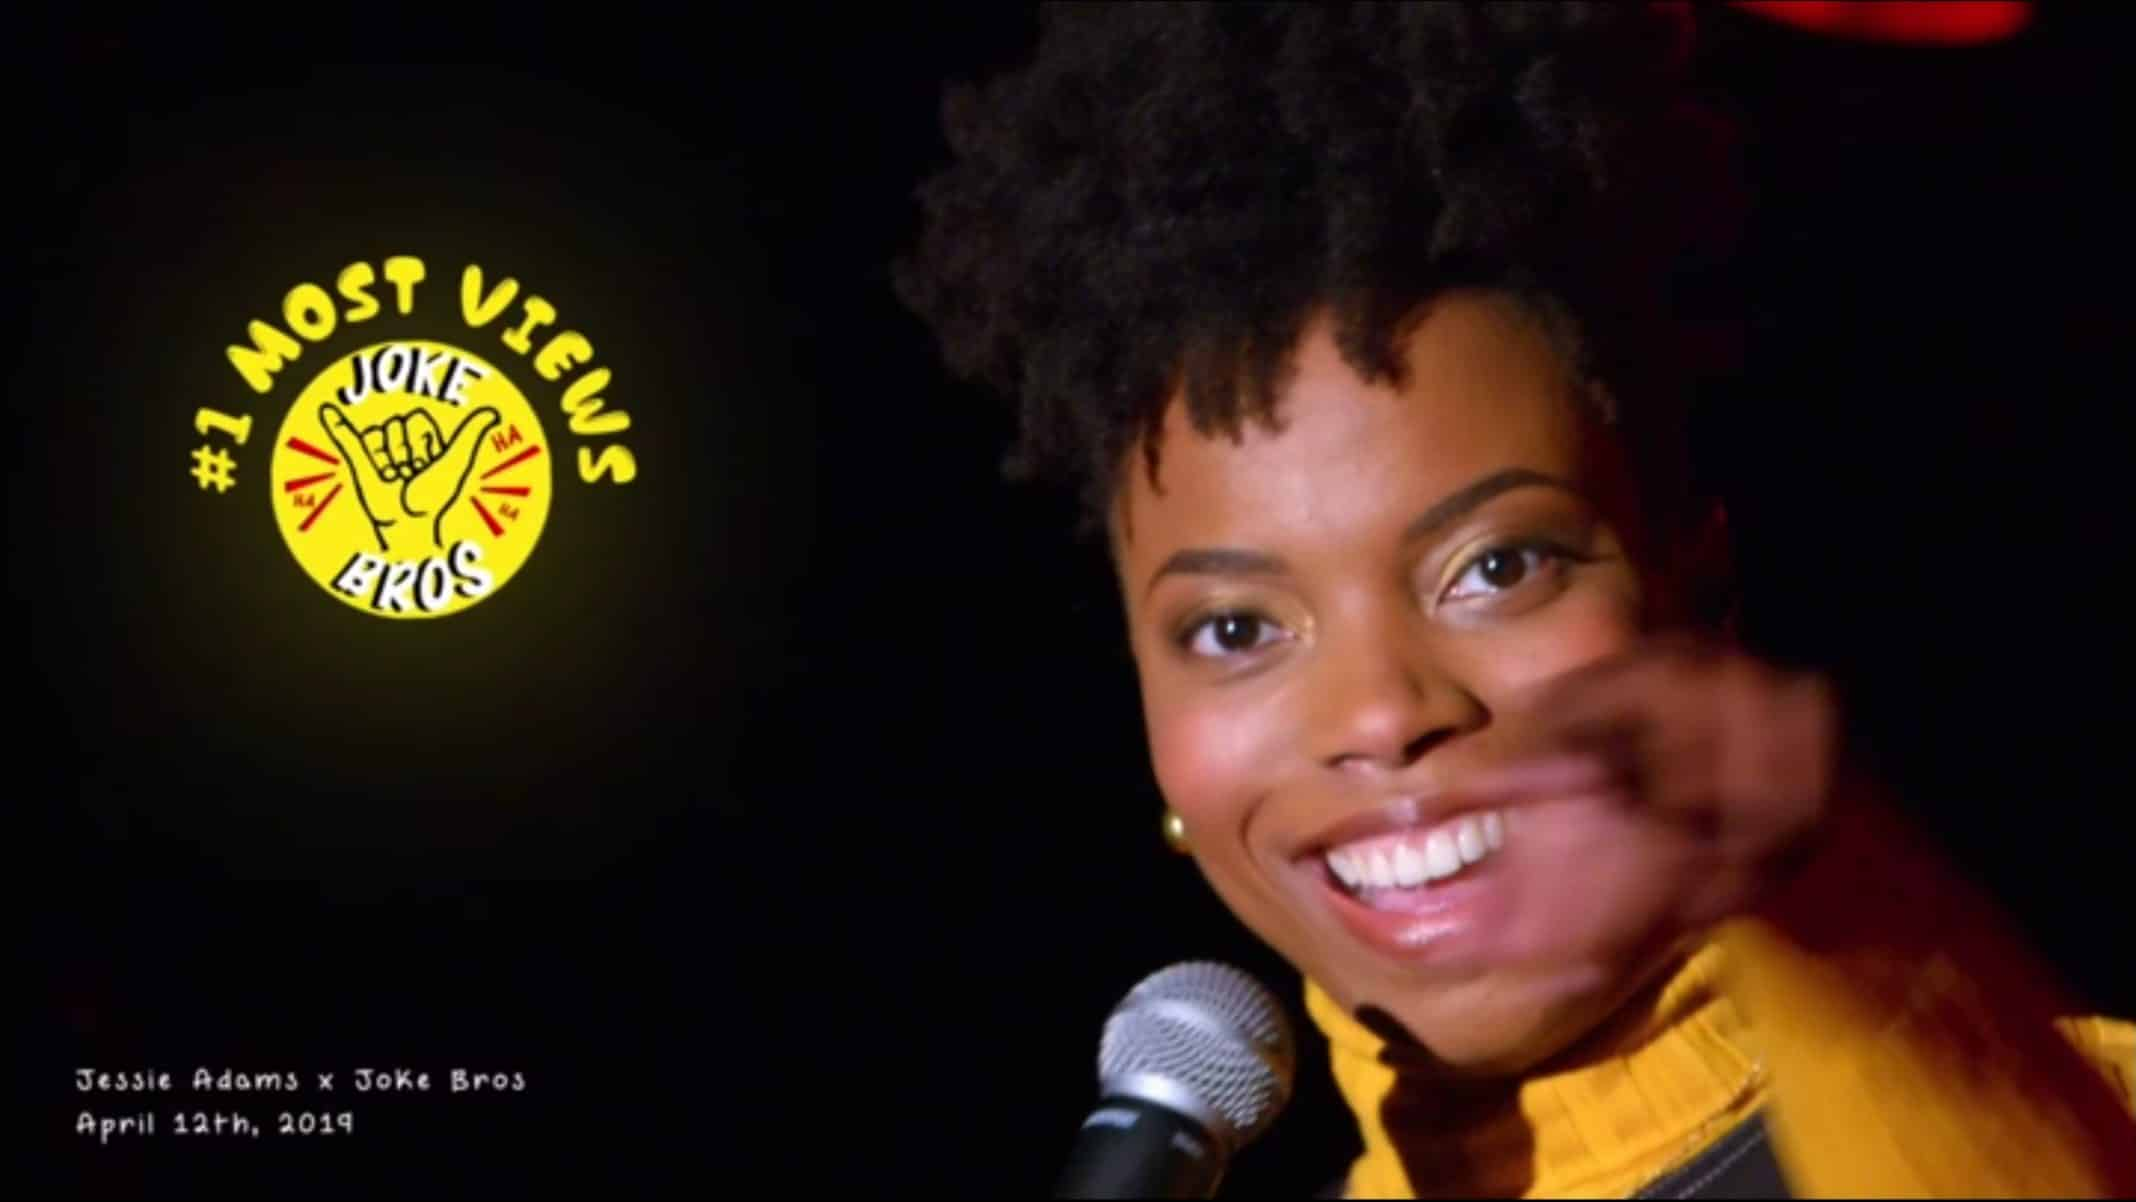 Jessie Adams (Sasheer Zamata) in a promo photo for her stand up set.